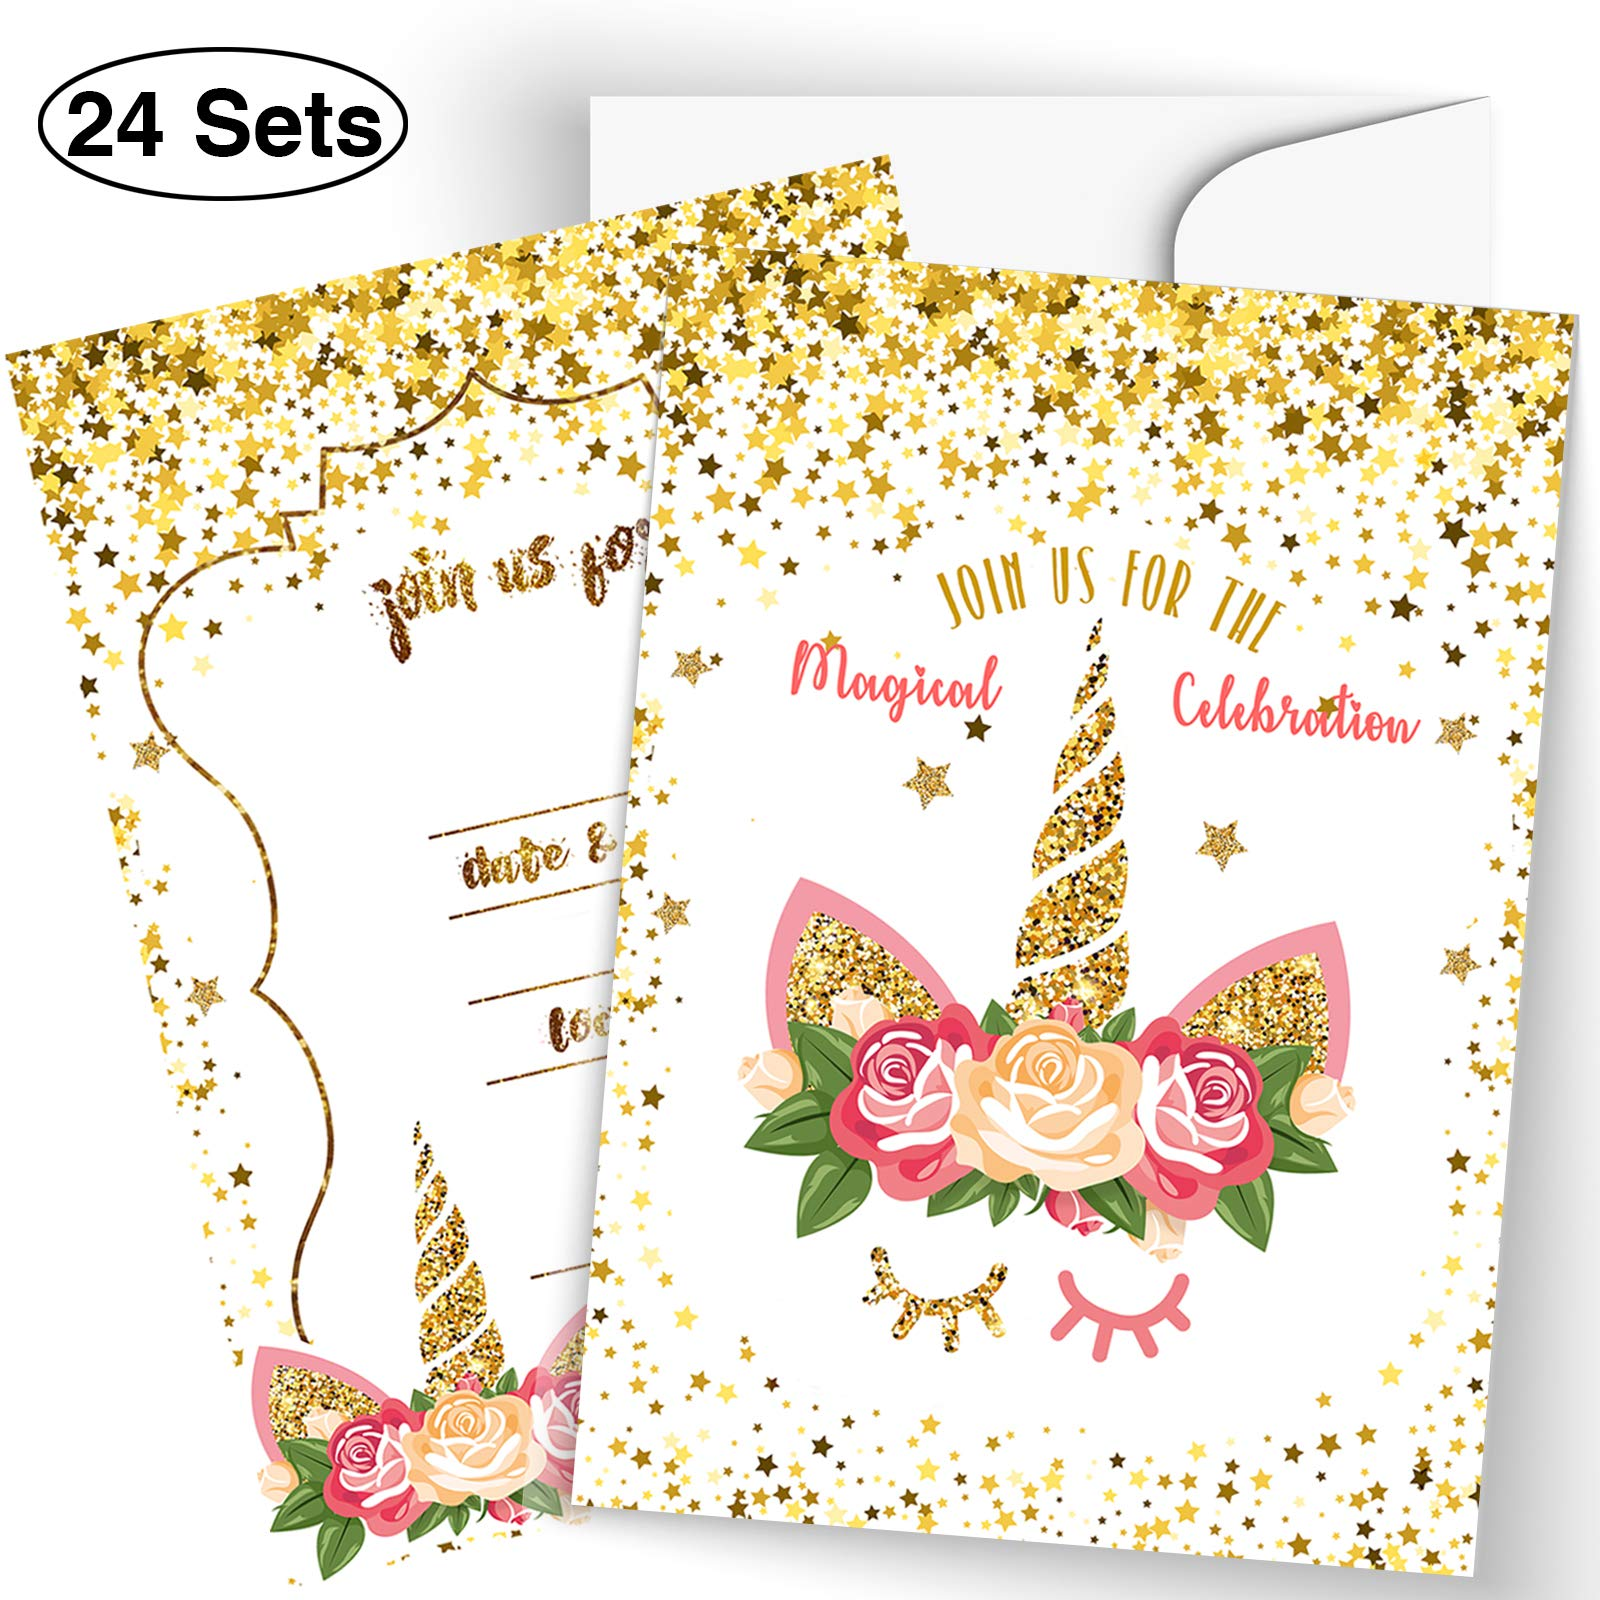 FRONT 24 Unicorn Invitations Large Set Glitter Unicorn Face with 24 Envelopes Double Sided